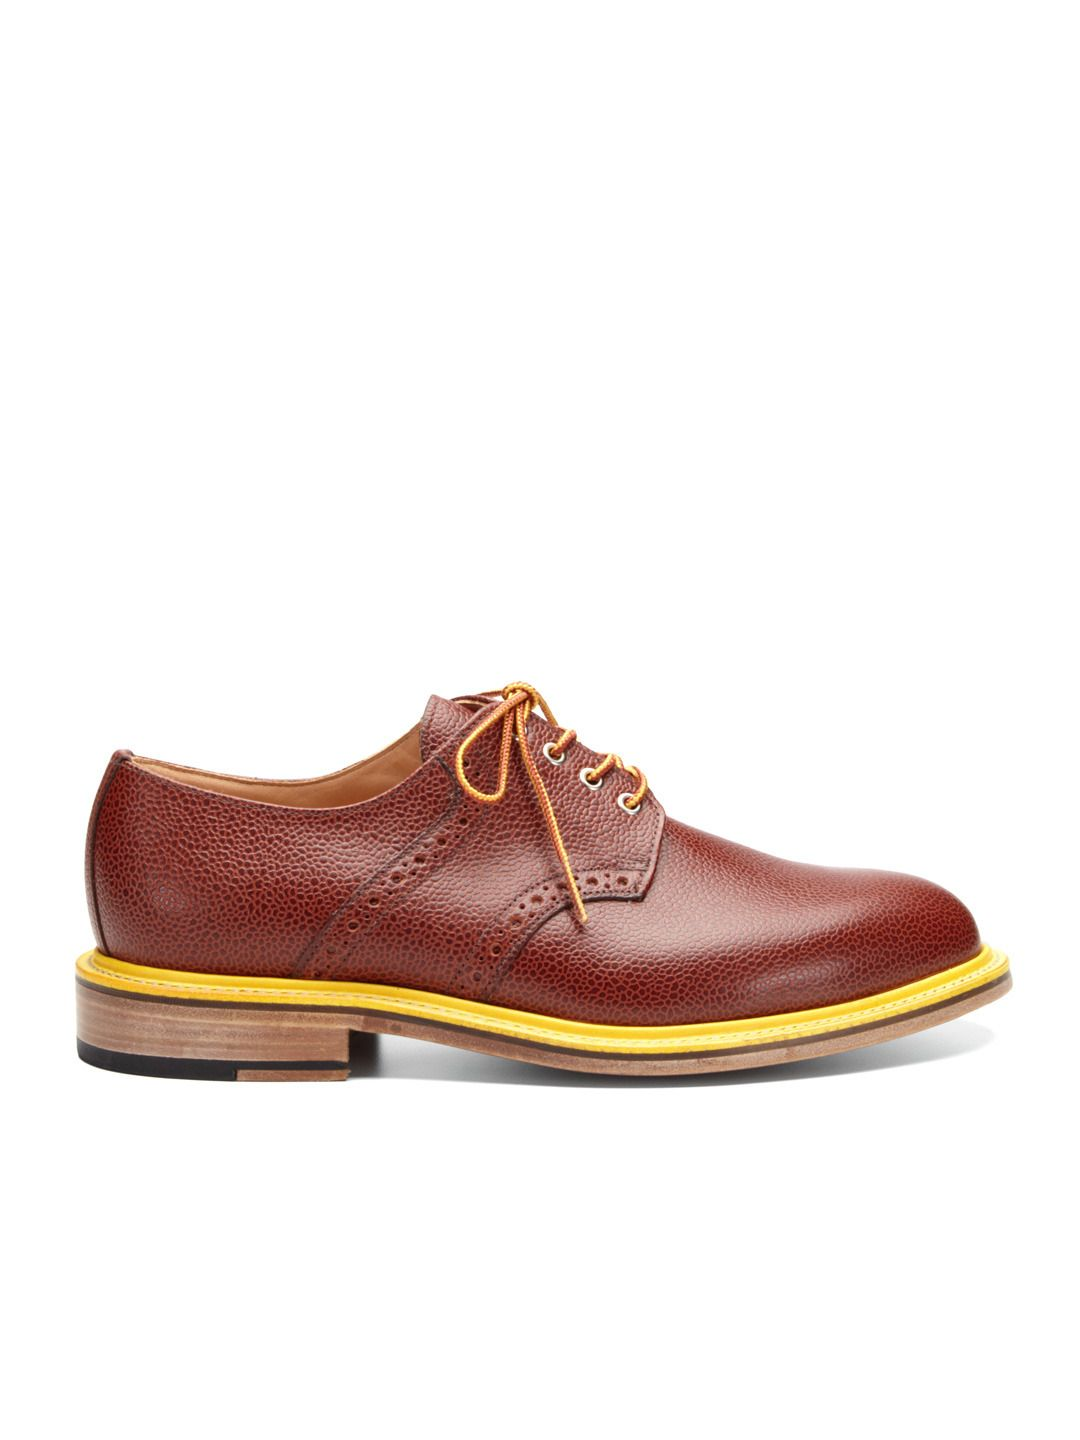 Top Grain Saddle Shoes by Mark McNairy on Park & Bond